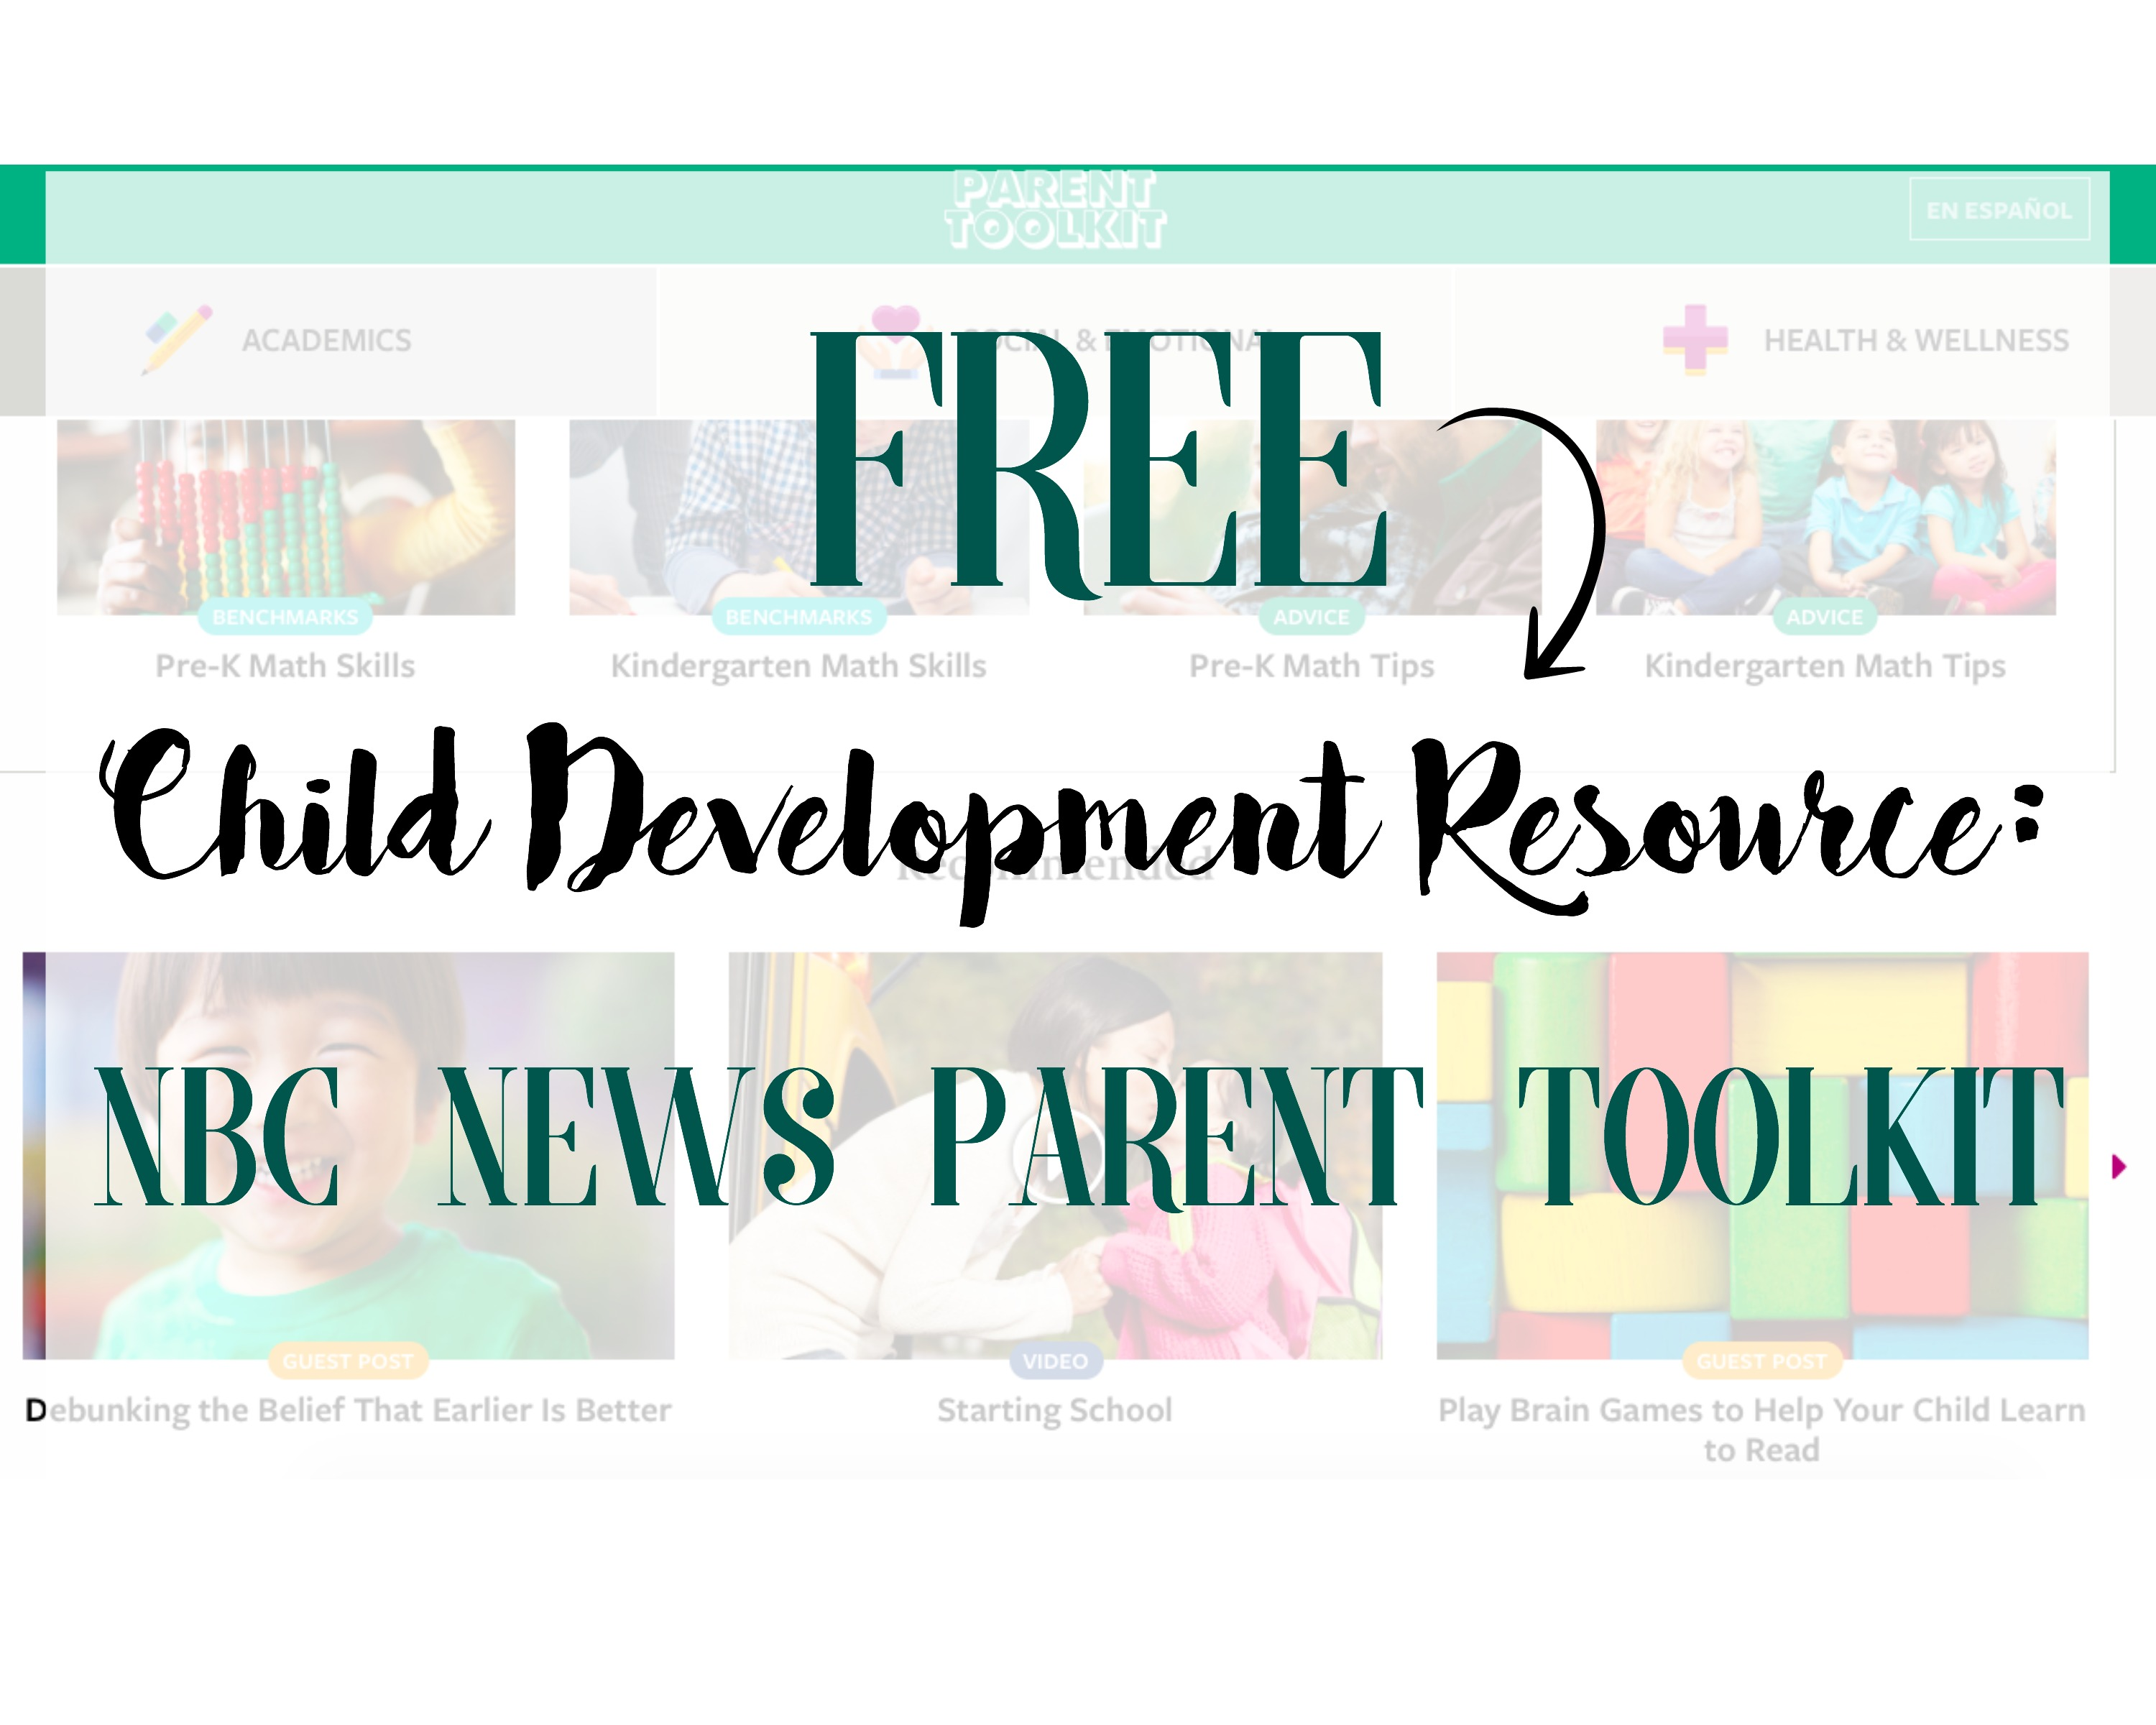 Free Child Development Resource: NBC News Parent Toolkit - NBC News Education Nation: Parent Toolkit | www.mamabearbliss.com